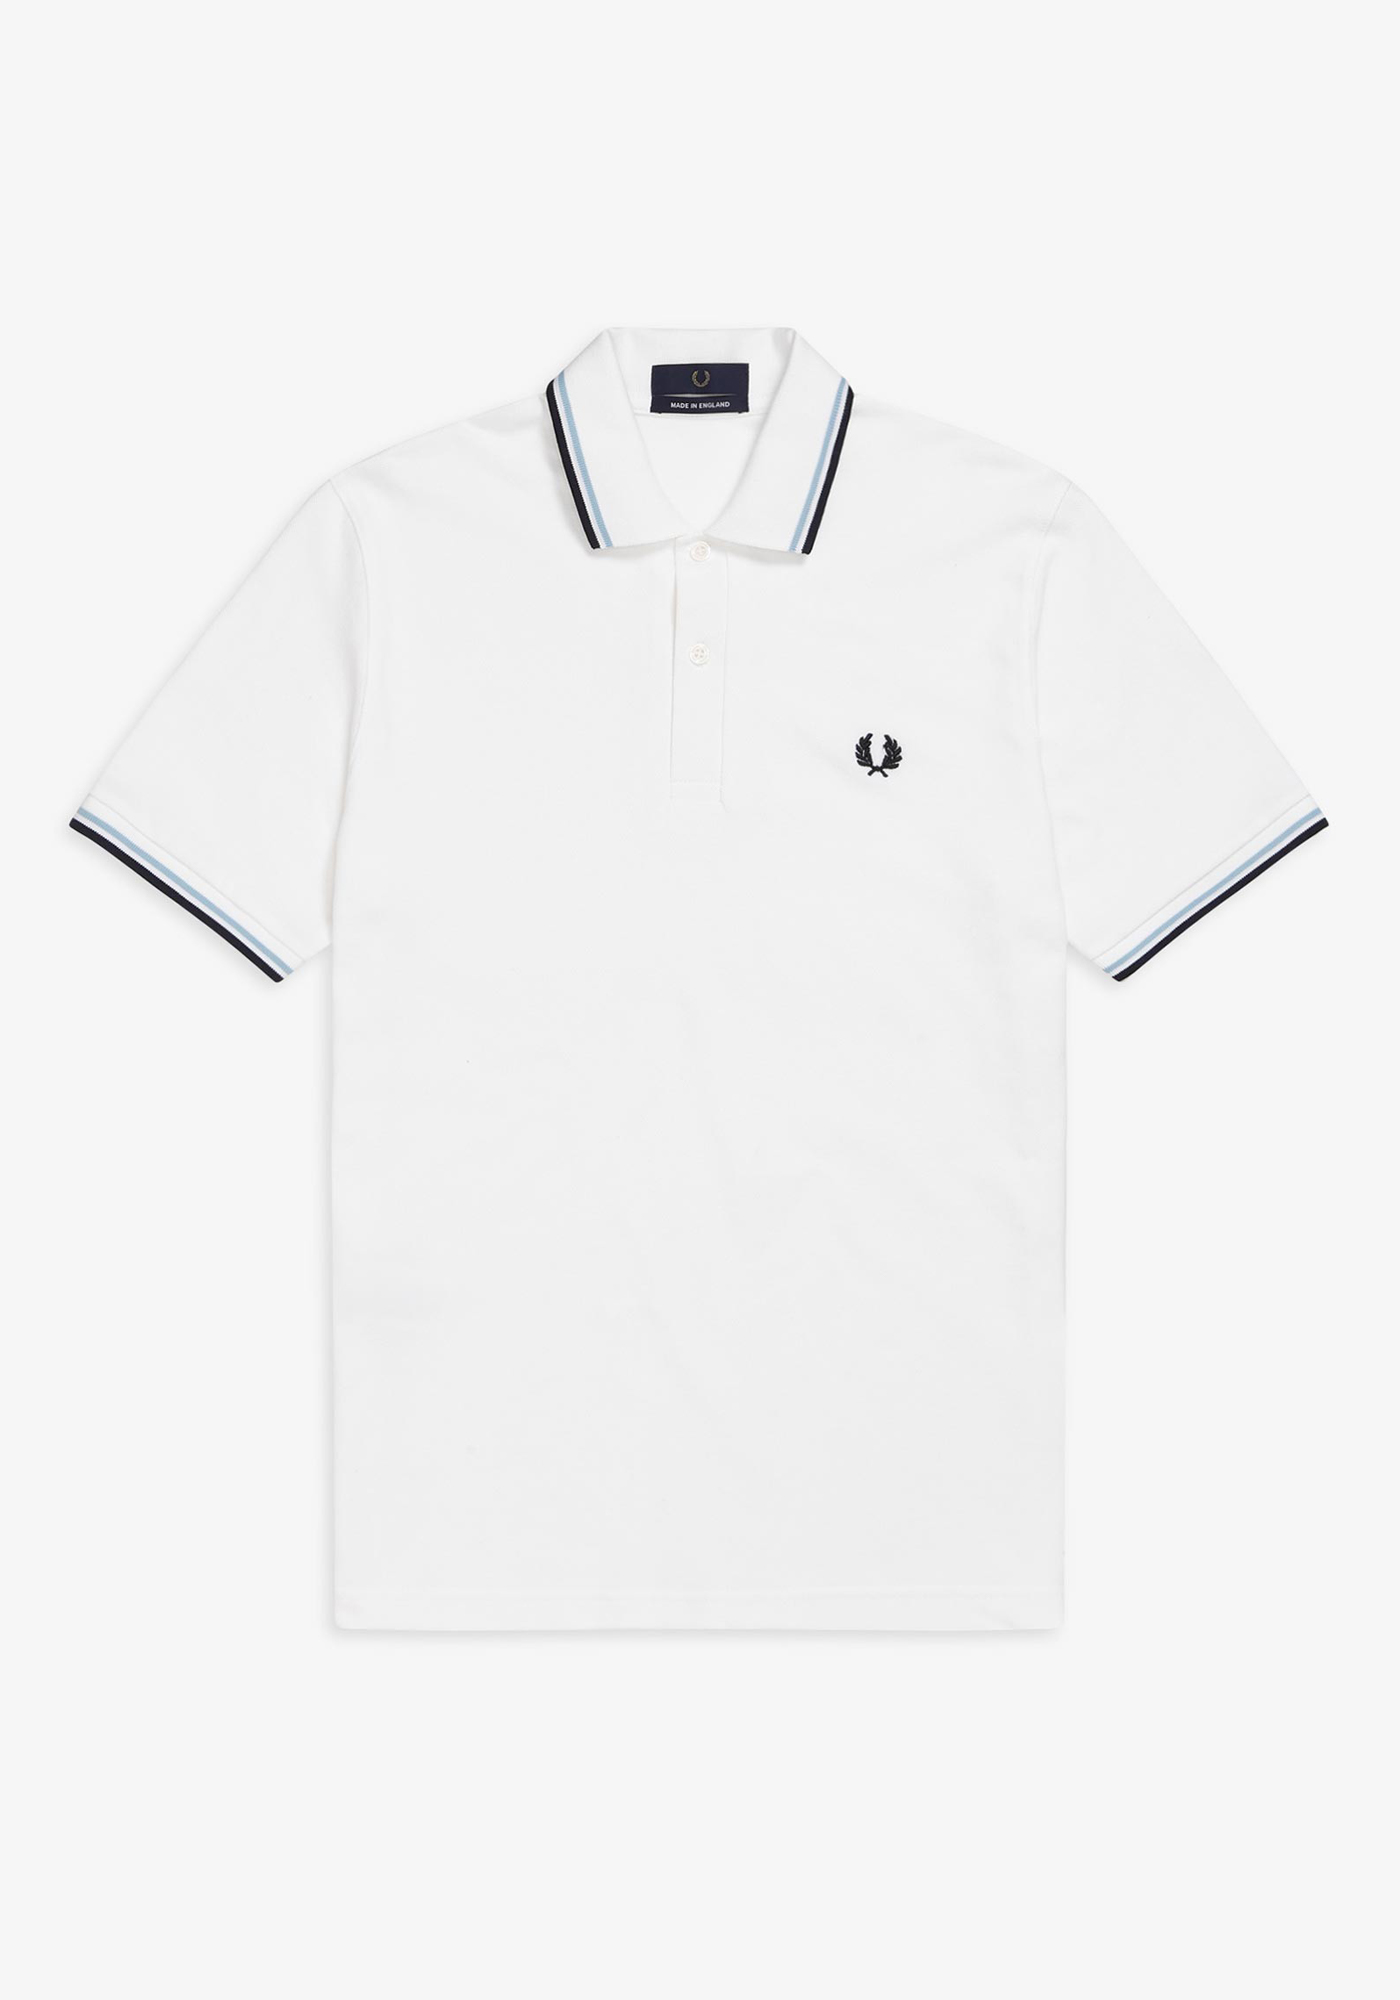 275cefac THE ORIGINAL TWIN TIPPED FRED PERRY SHIRT